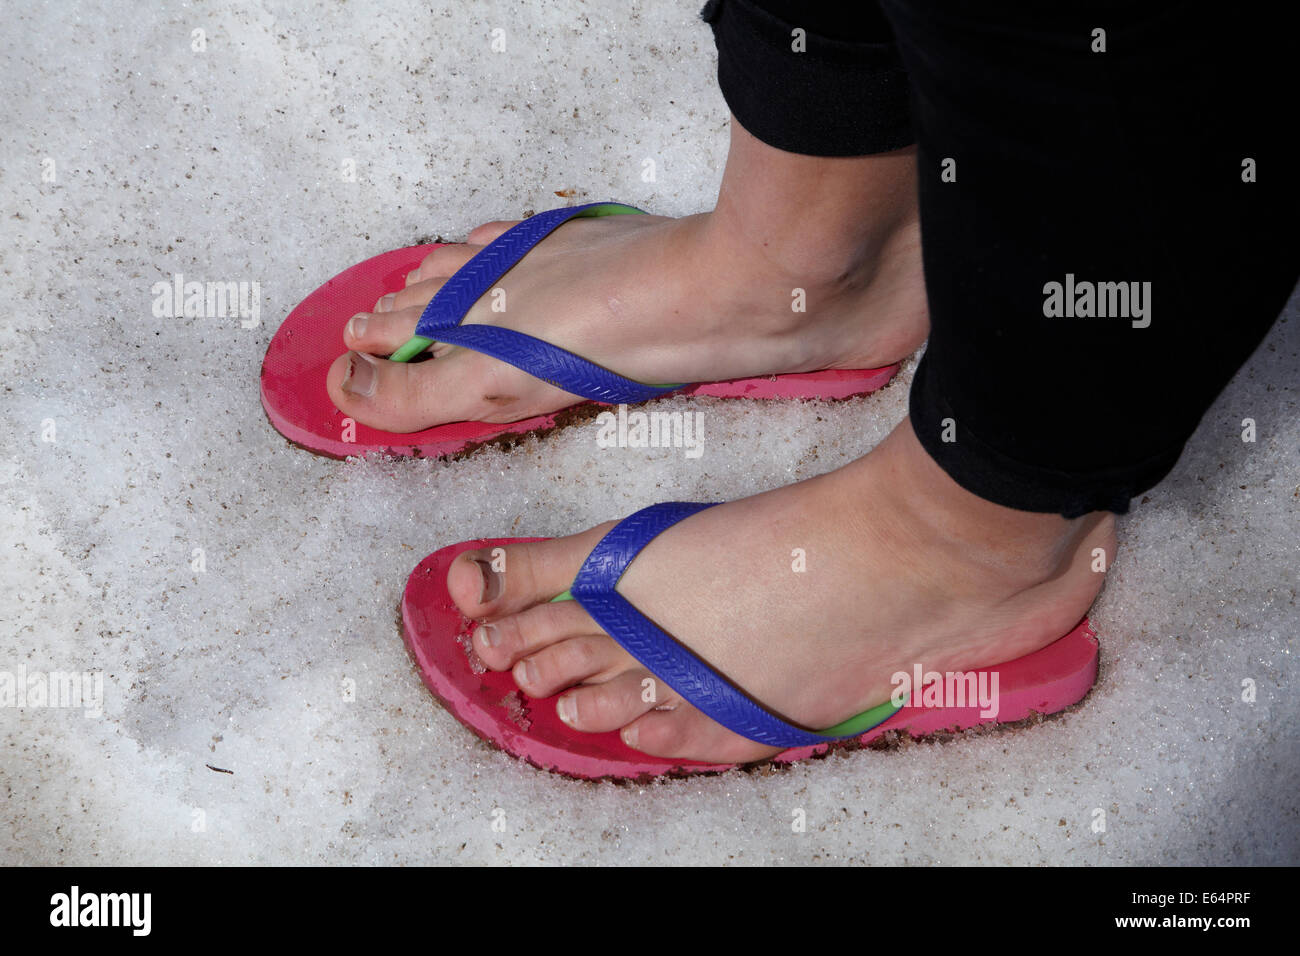 Flip-flops/thongs/jandals/sandals in snow at Molas Pass (10,910 ft/3325 m), US 550, San Juan Skyway, Colorado, USA - Stock Image